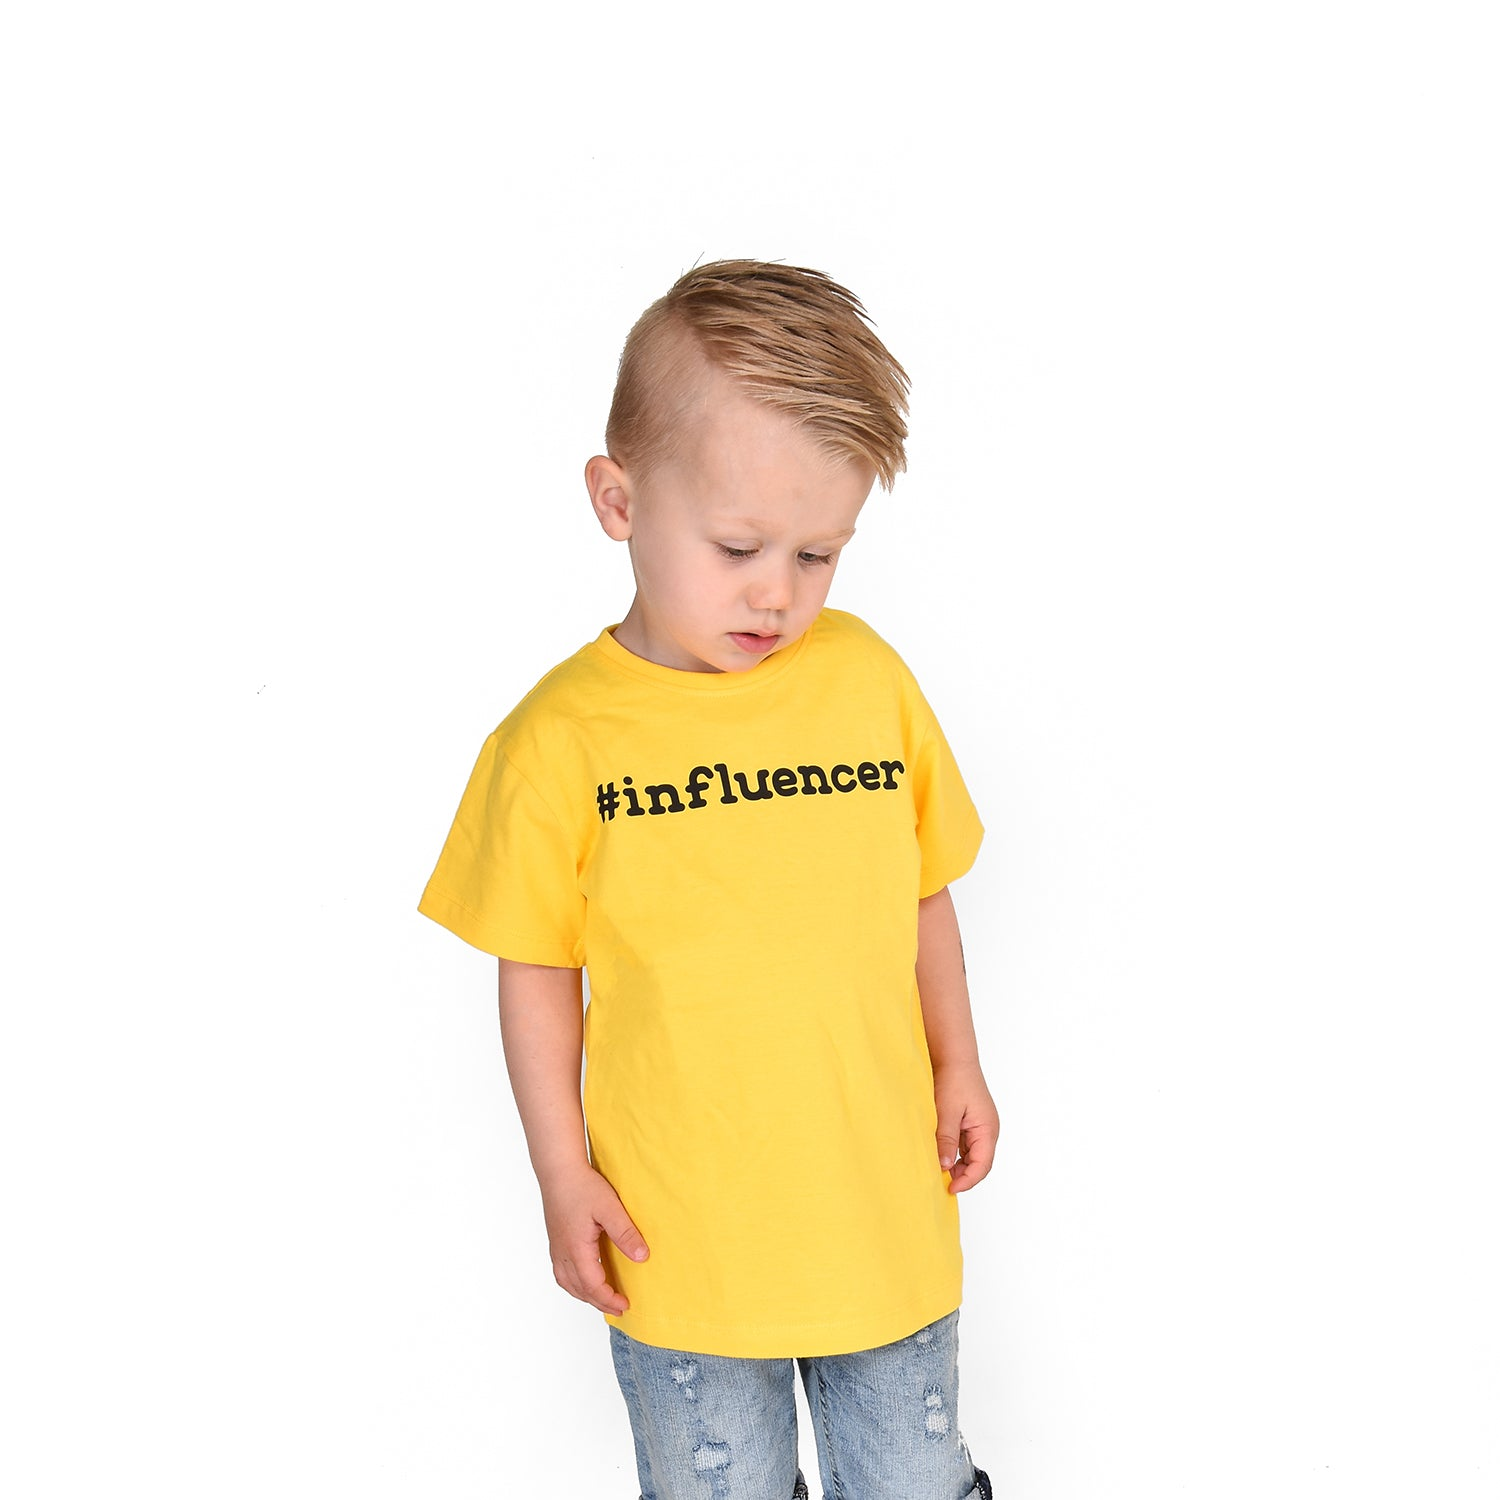 Blonde boy looking at his feet with yellow shirt, with '#influencer' print, by KMLeon.